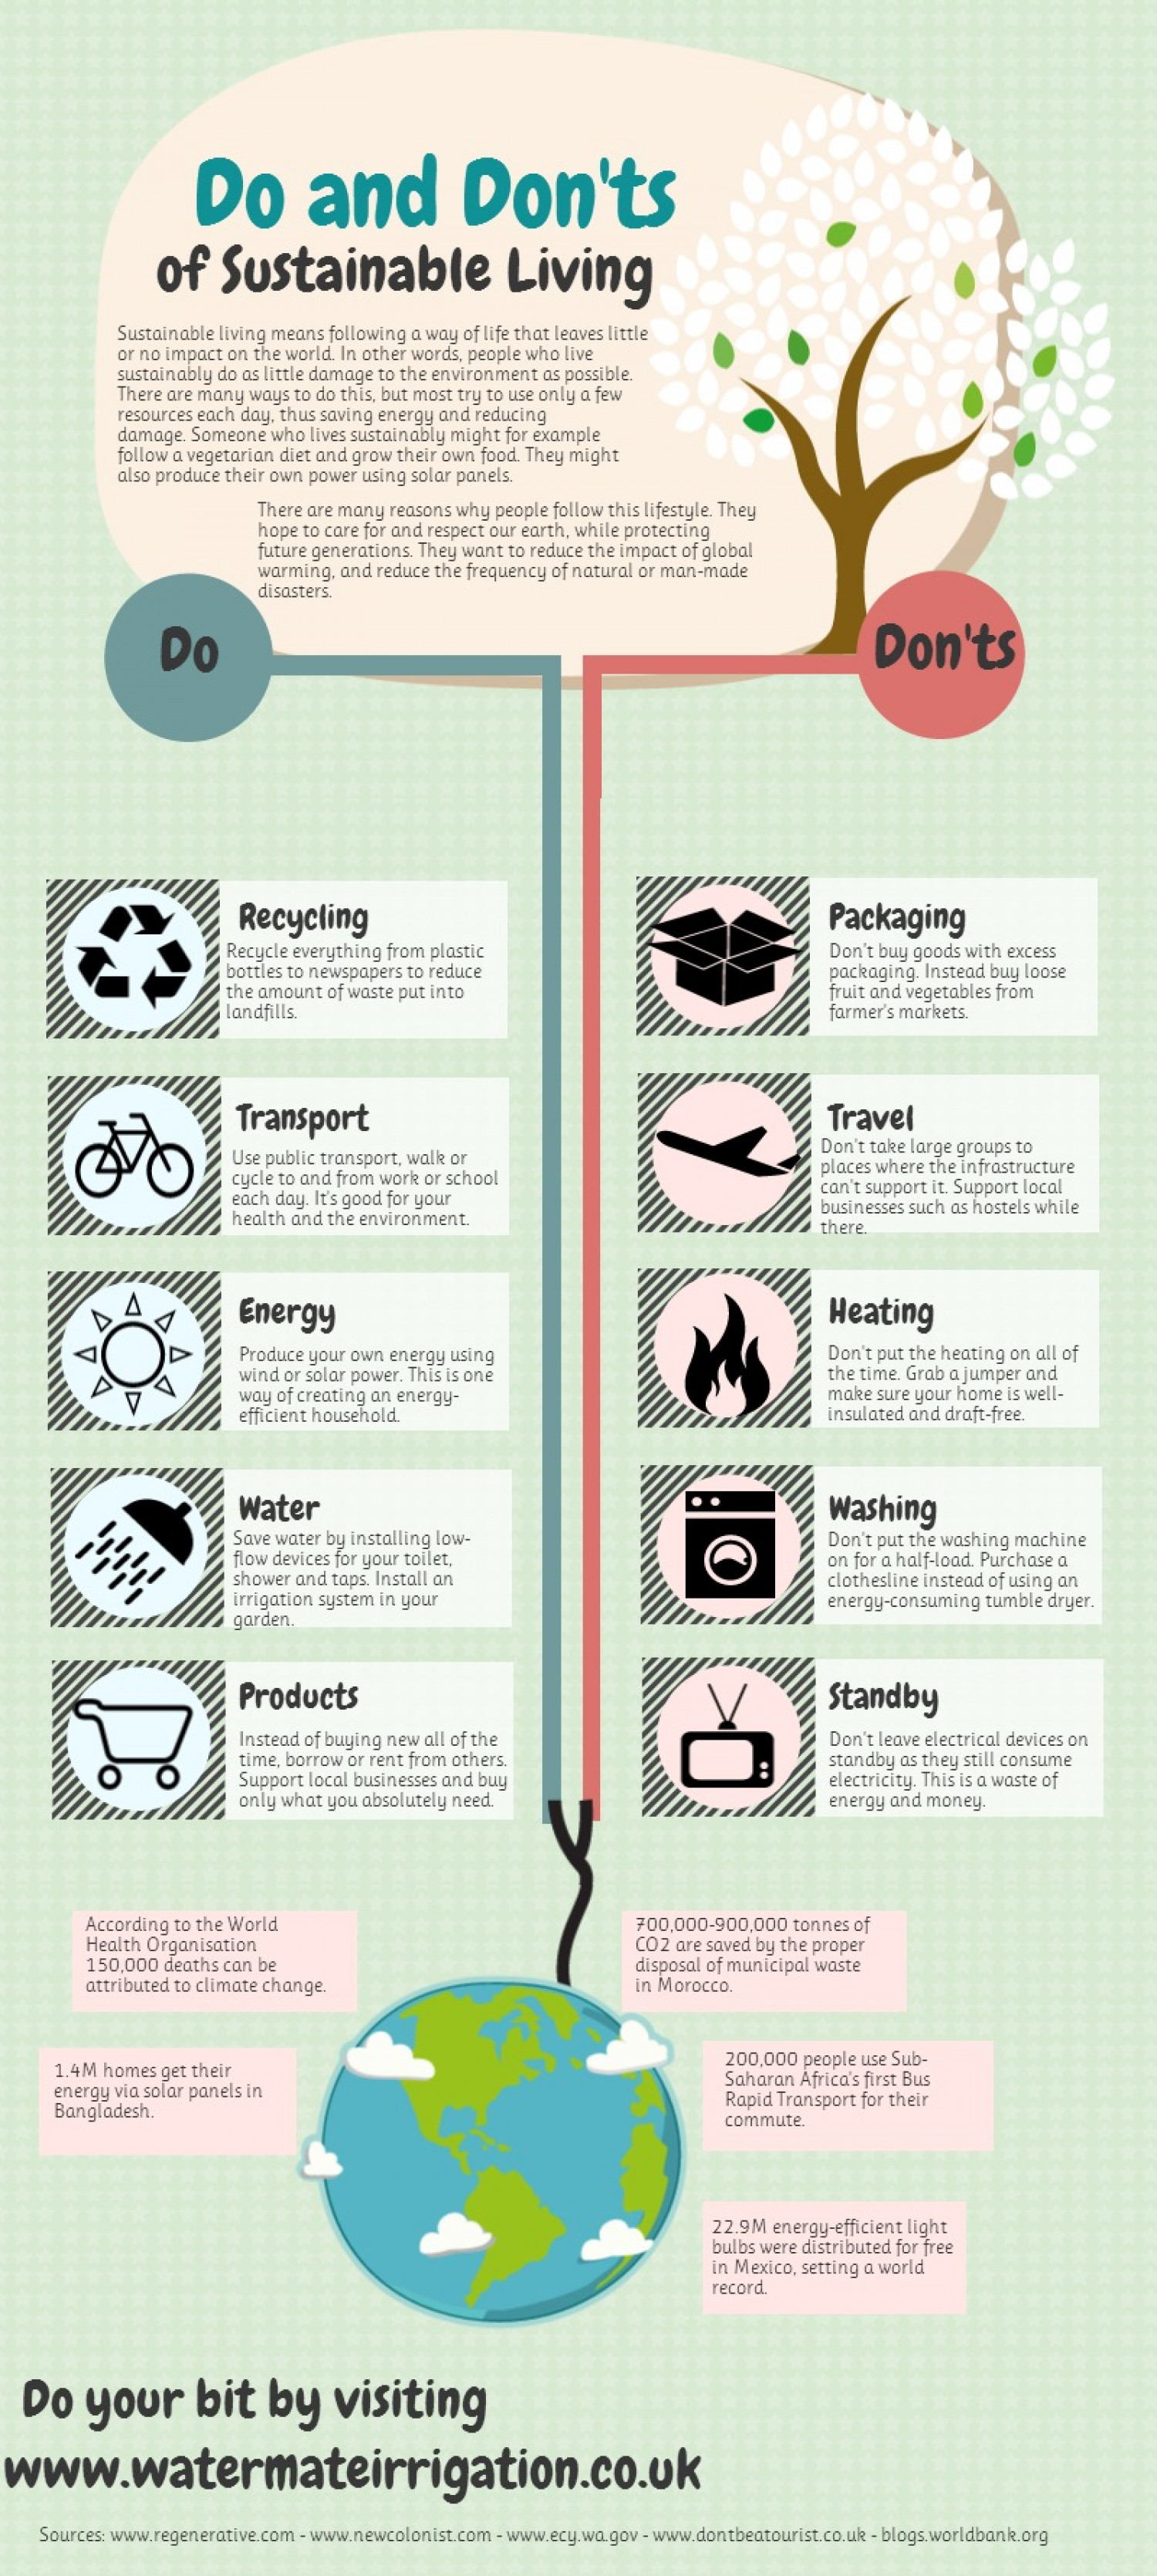 Do and Don'ts of Sustainable Living Infographic